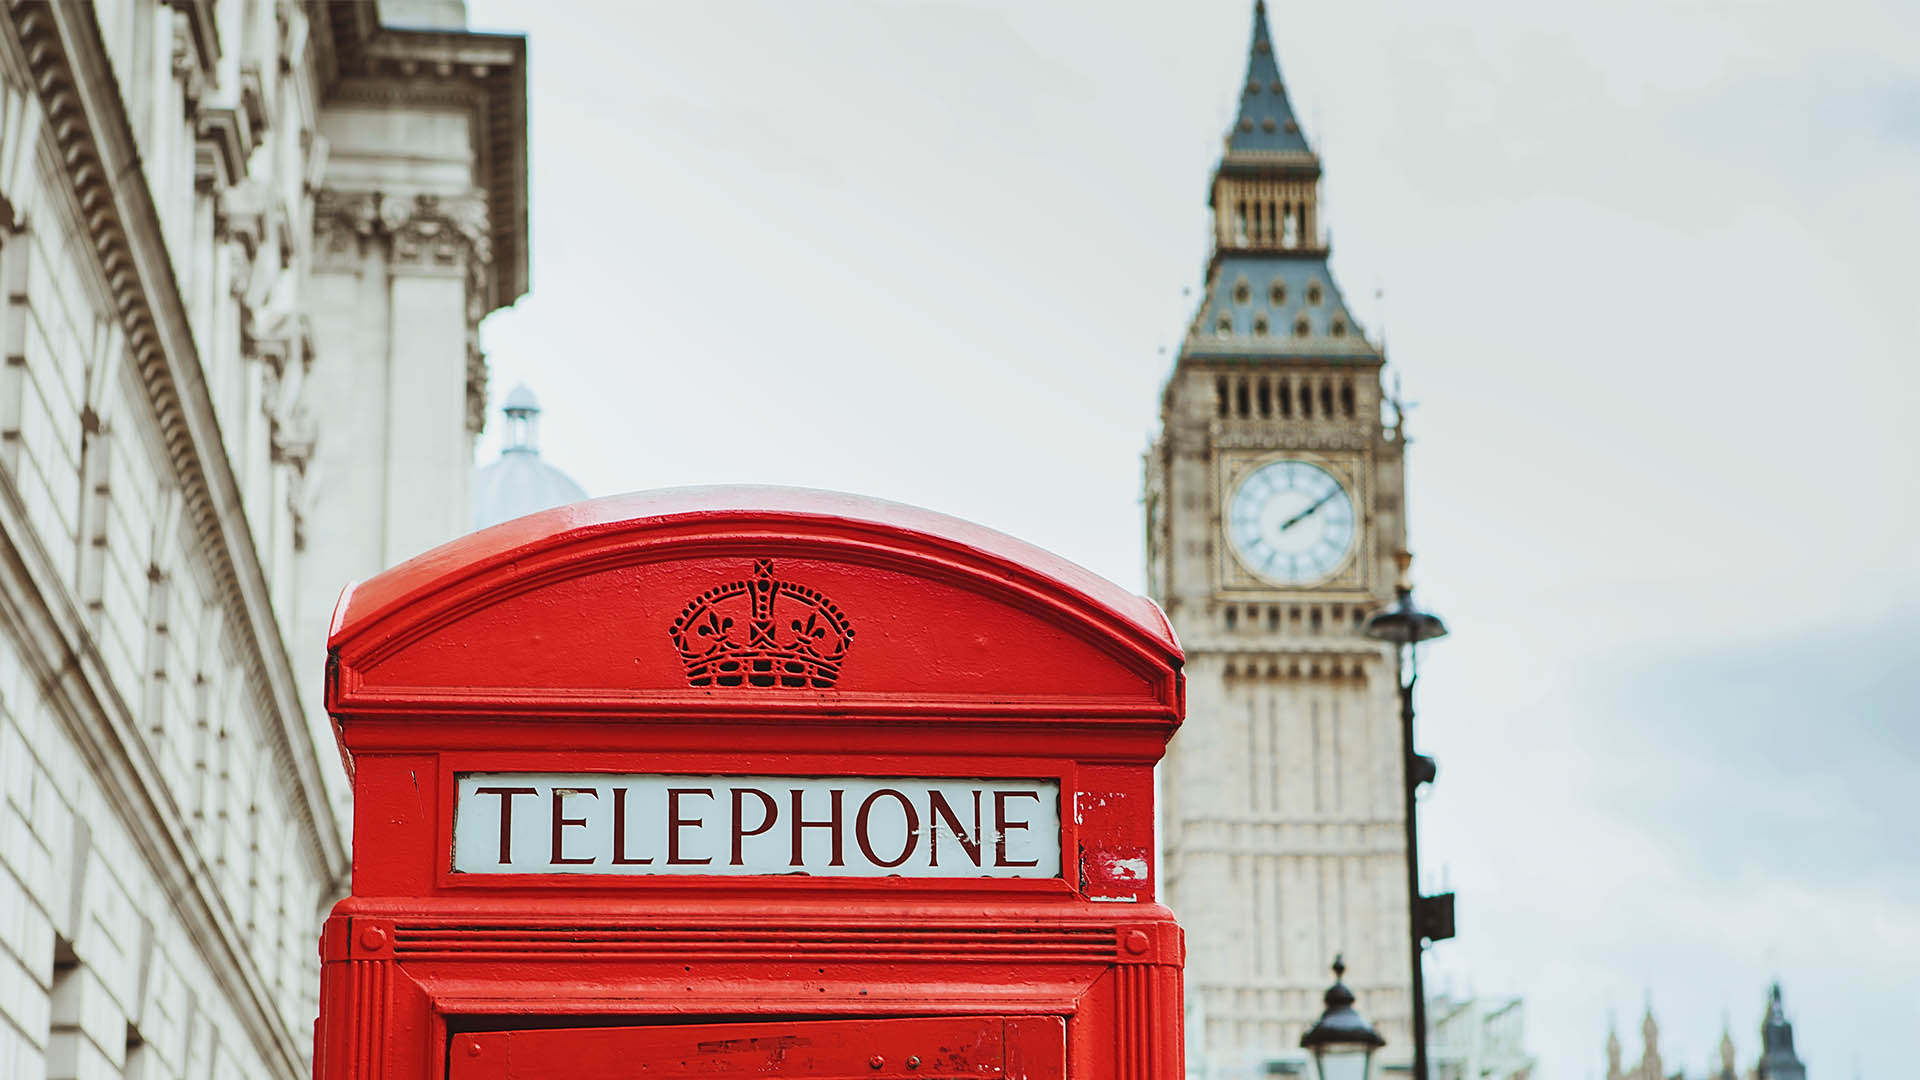 London calling: 3 boutique hotels still open for business